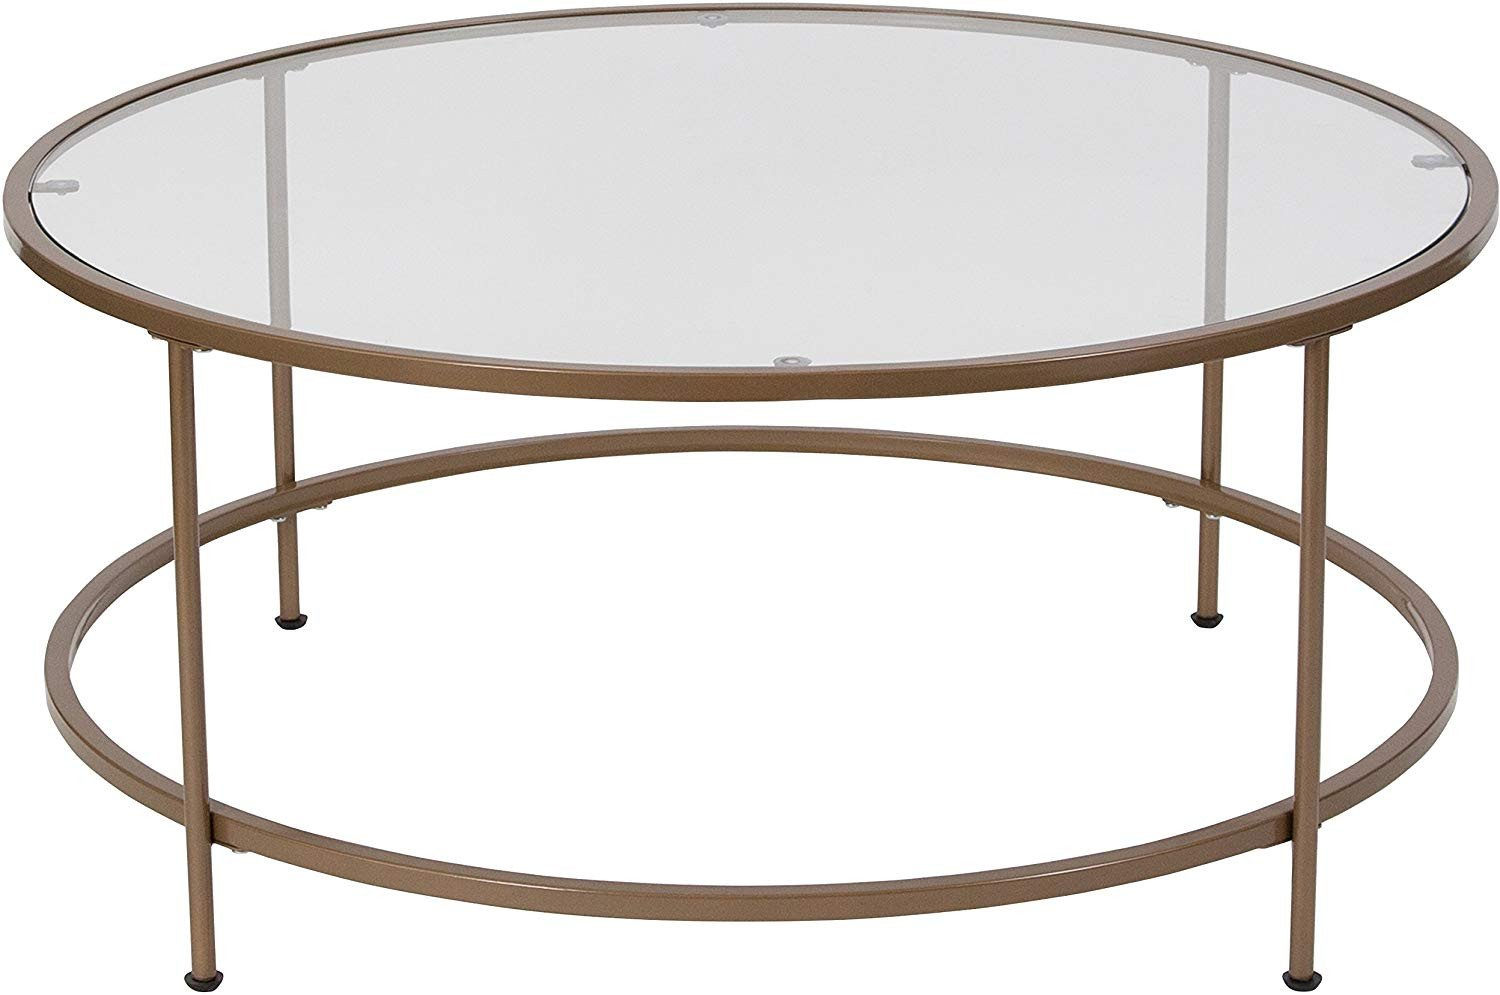 Glass Side Tables for Bedroom Lovely Flash Furniture astoria Collection Glass Coffee Table with Matte Gold Frame Nan Jn Ct Gg